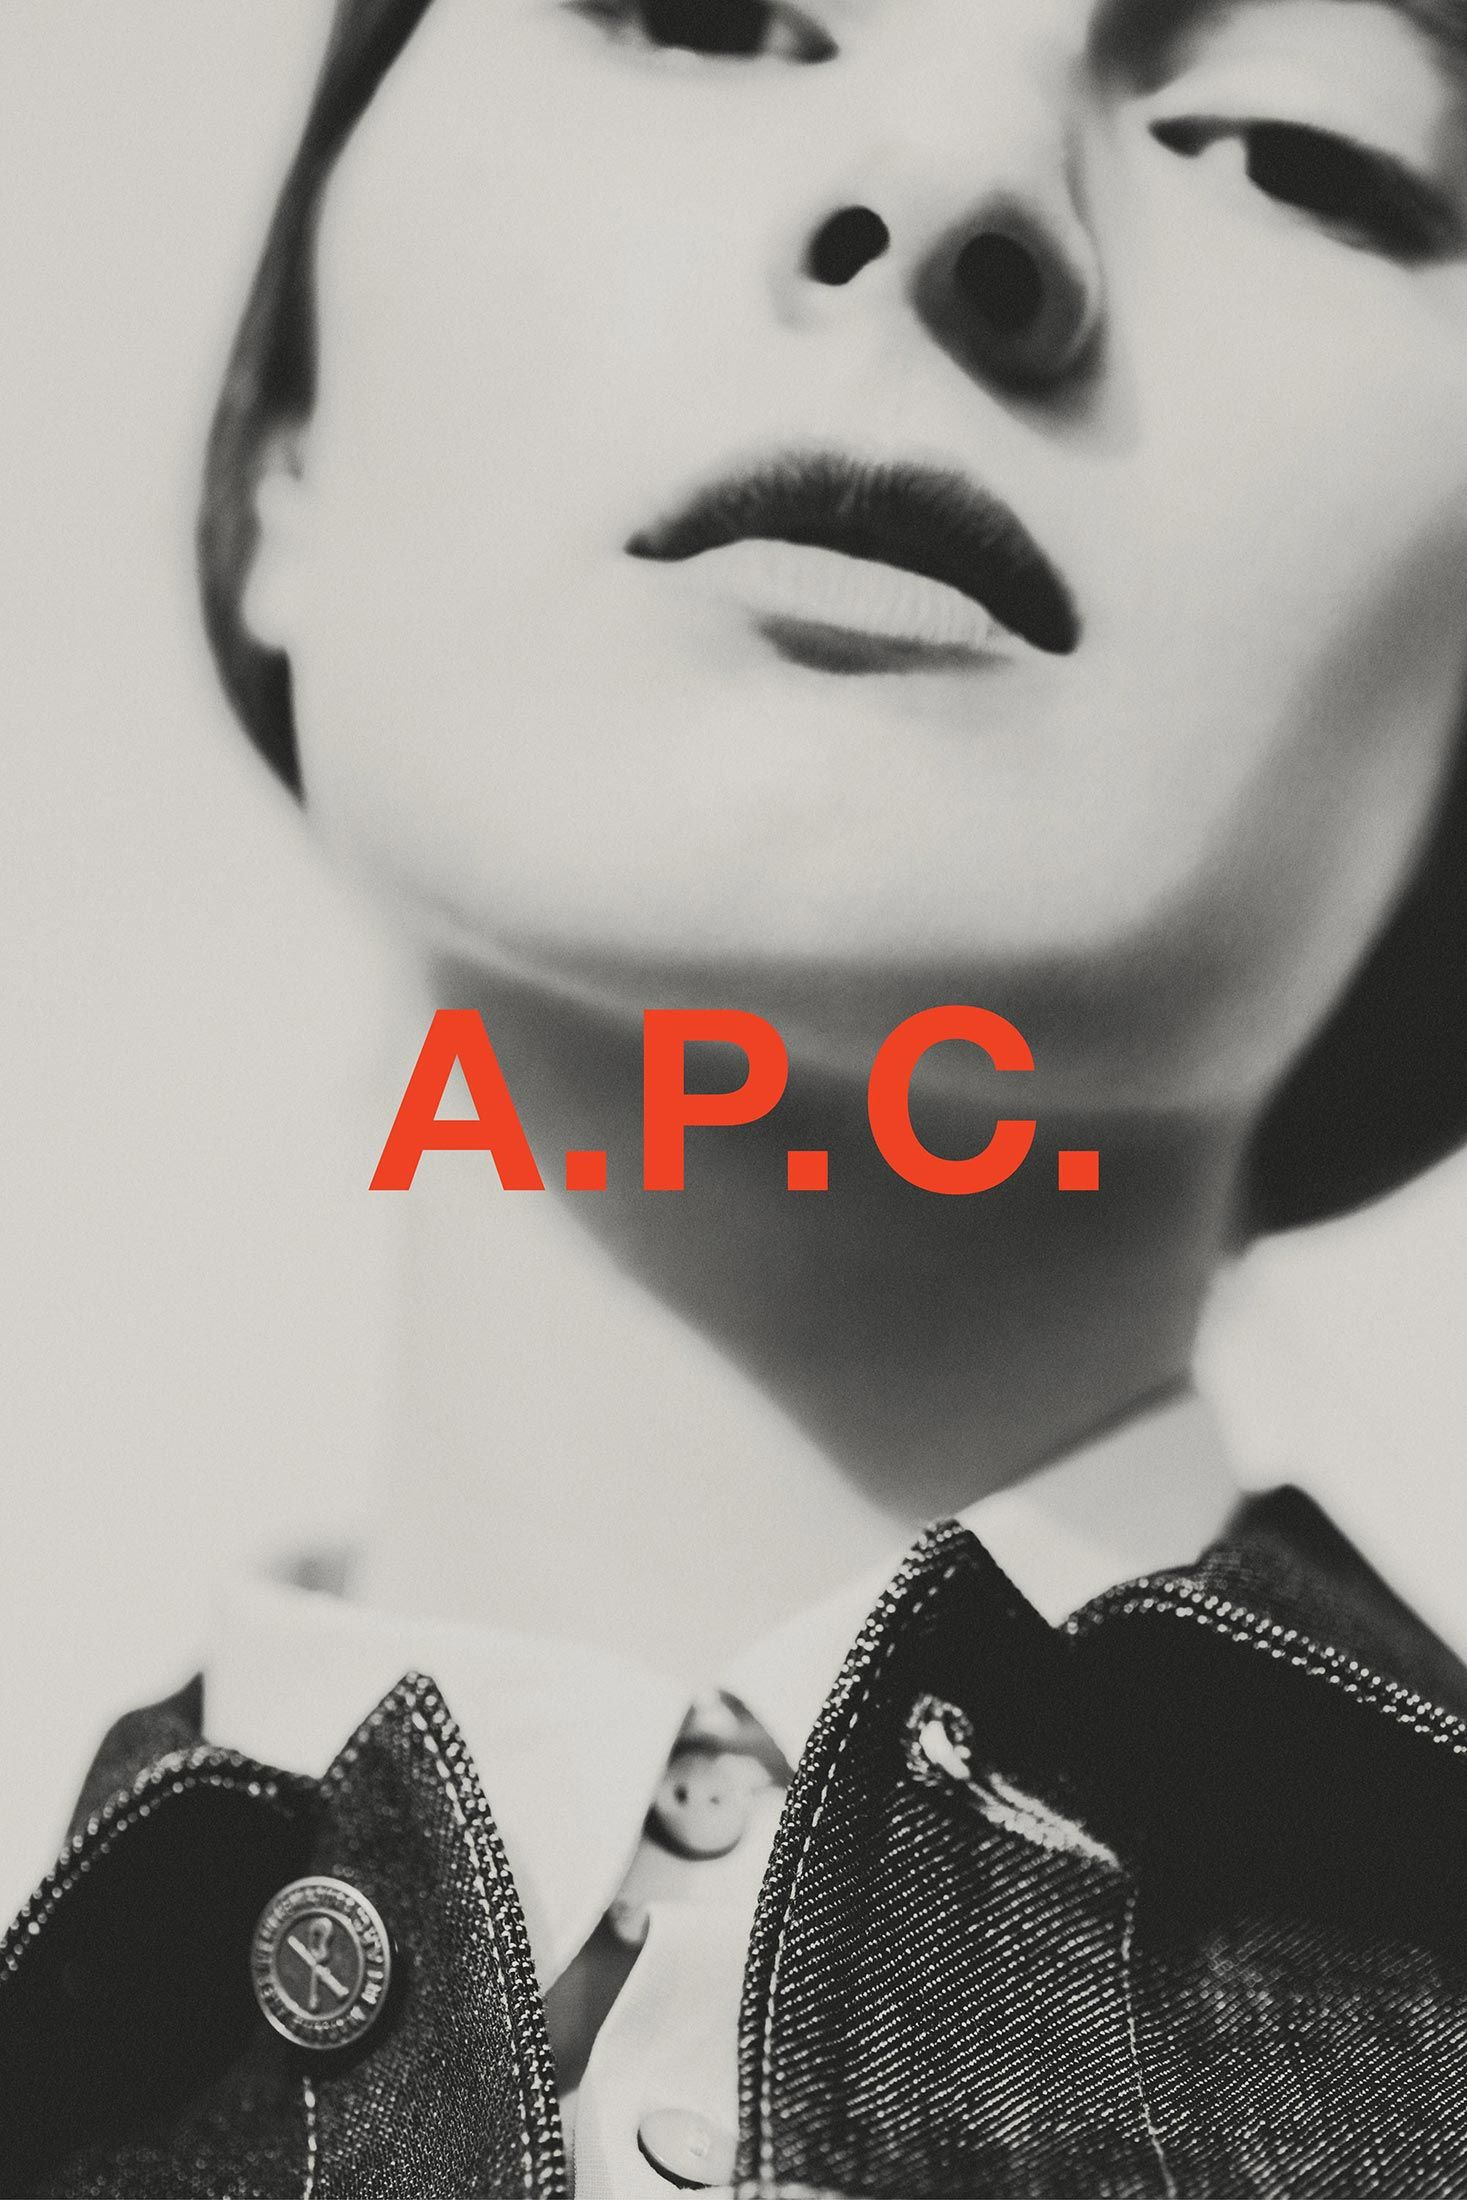 Dundrum body piercing  APC denim photography Andrea Spotorno  PHOTOGRAPHY  Pinterest